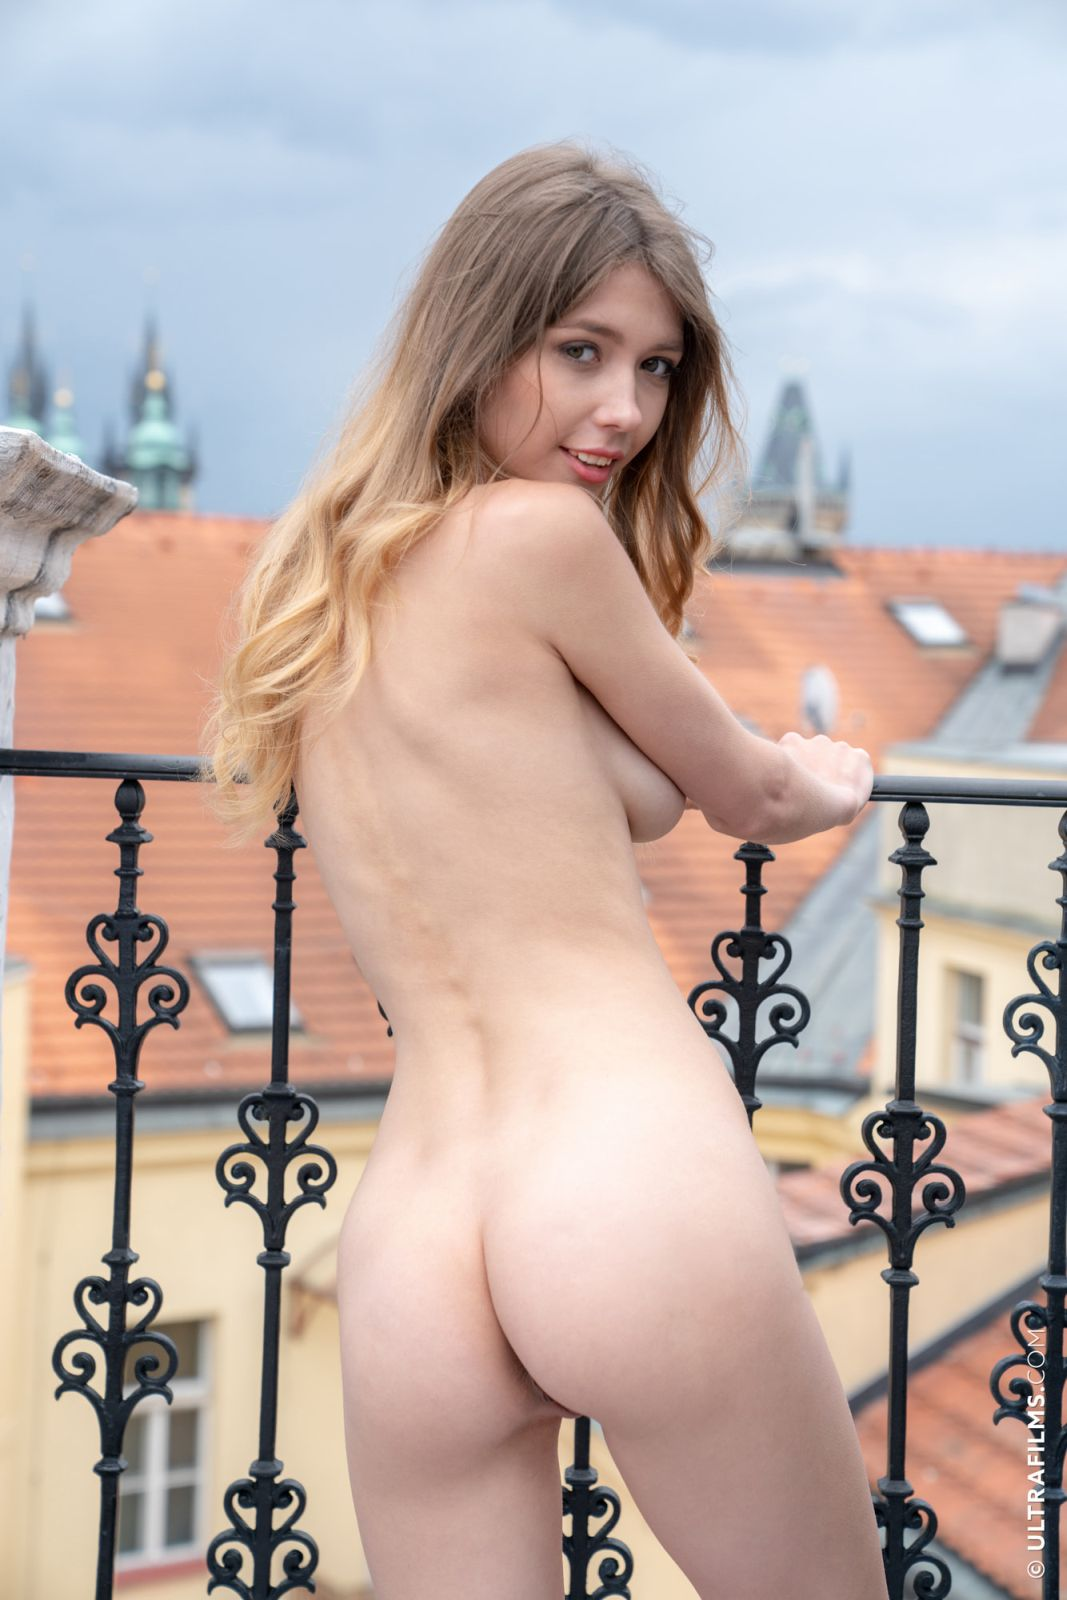 Nude images of ordinary girls